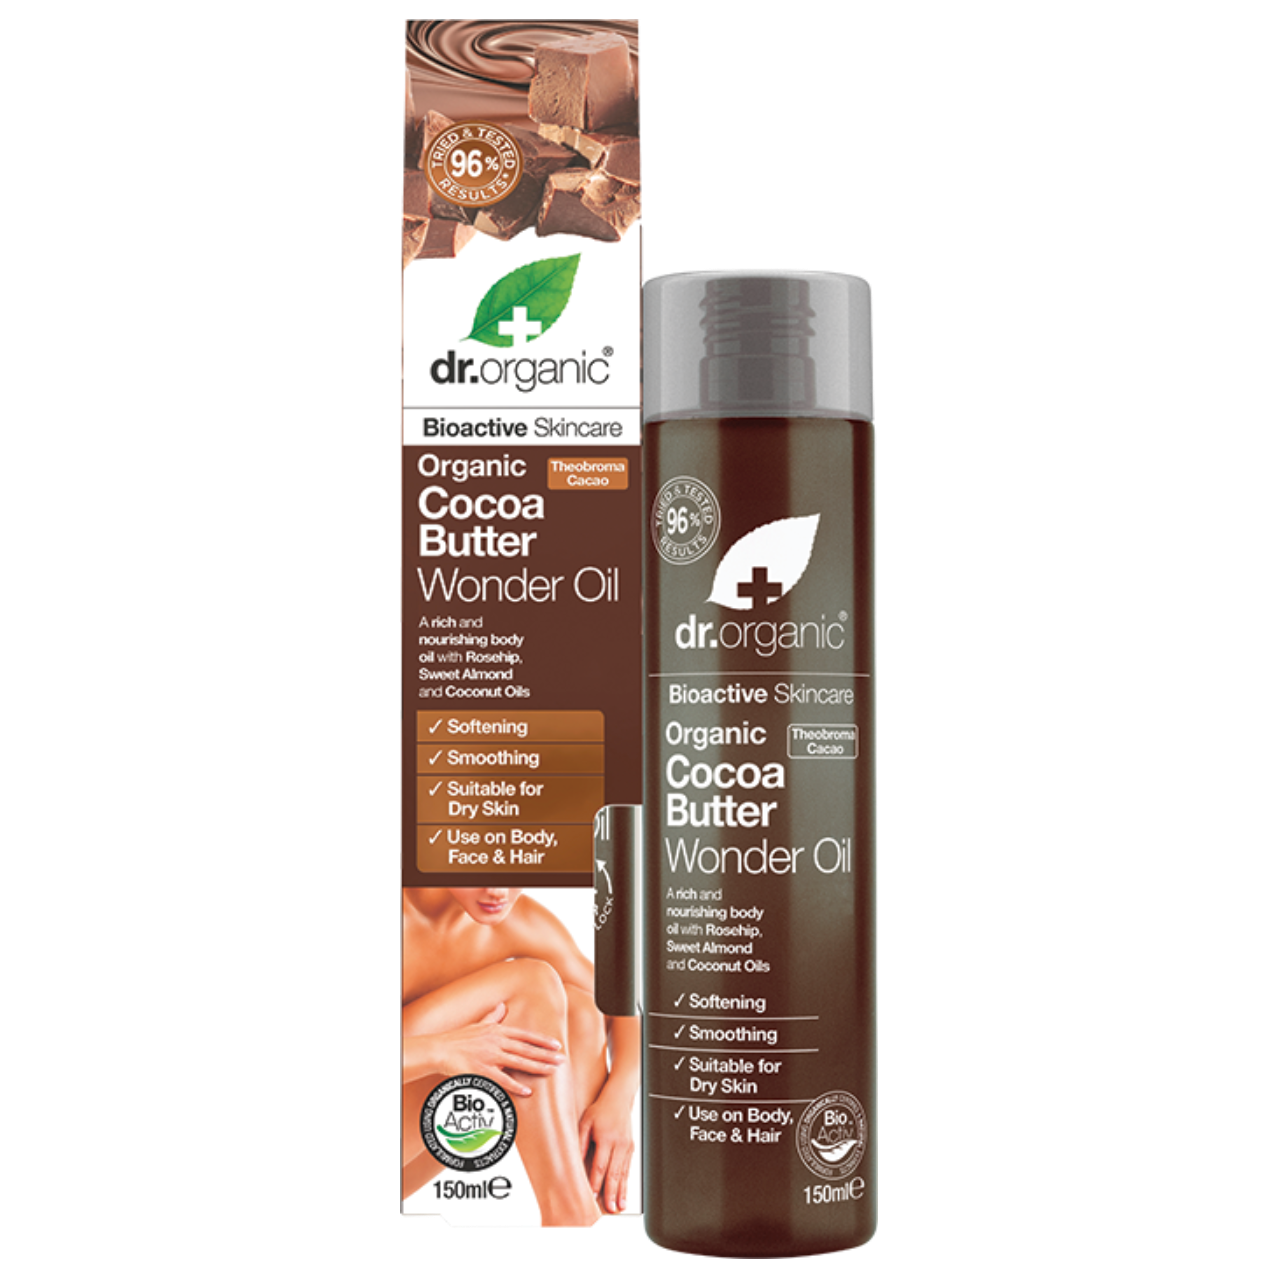 Dr Organic Cocoa Butter Wonder Oil